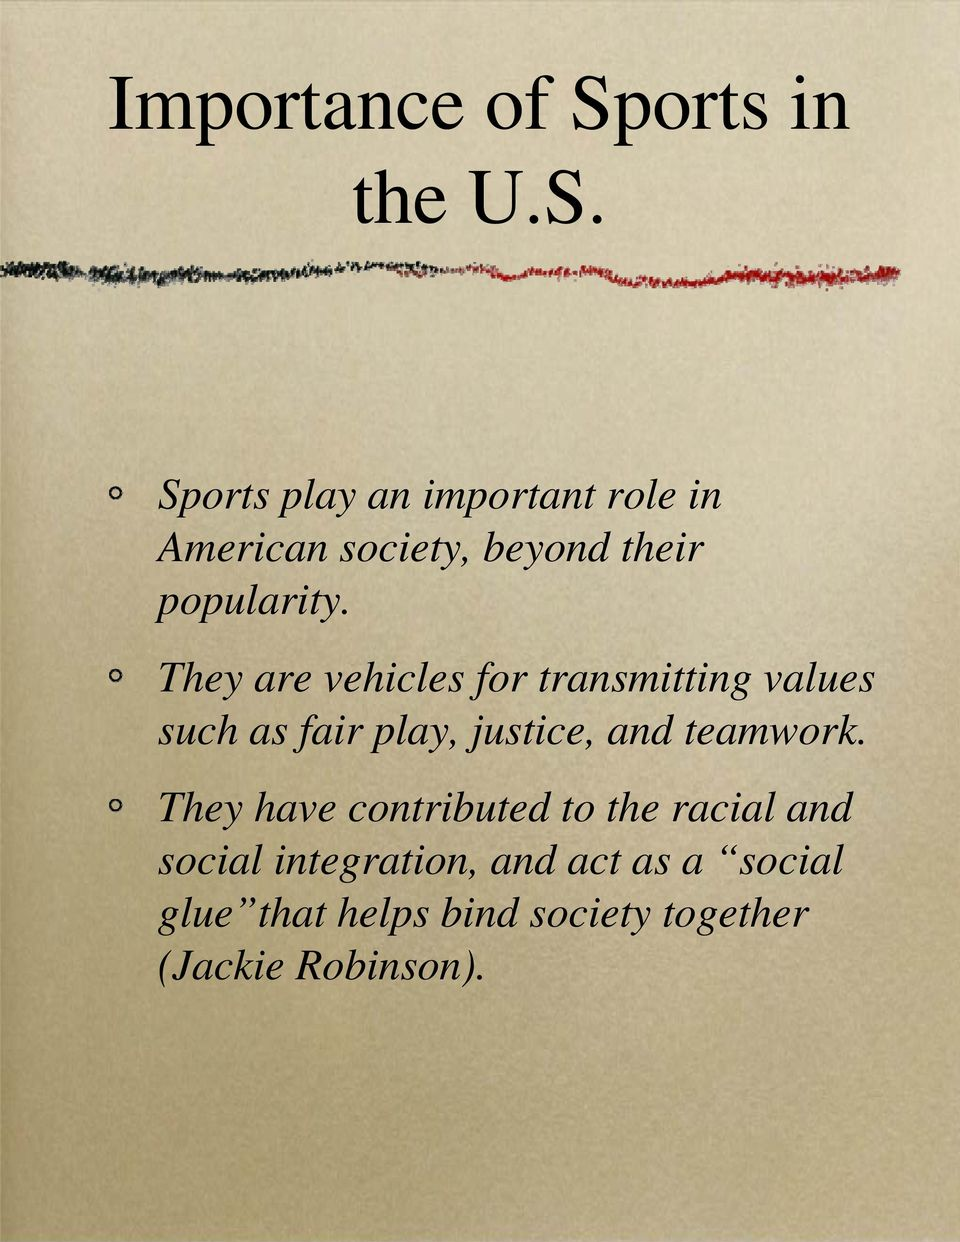 Sports play an important role in American society, beyond their popularity.